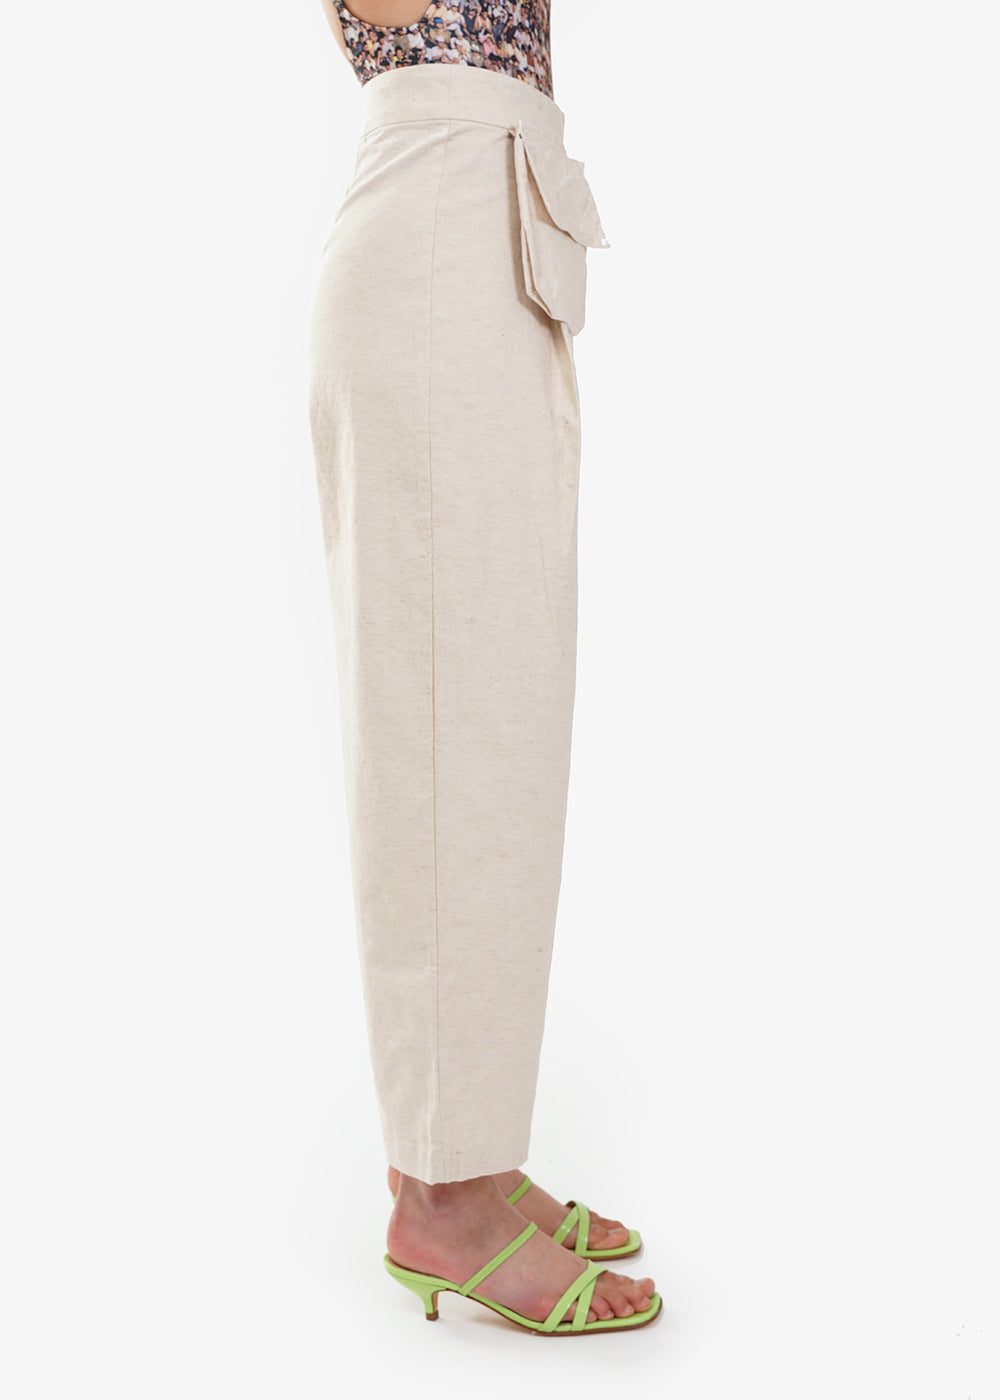 Paloma Wool Jueves Pants — Shop sustainable fashion and slow fashion at New Classics Studios